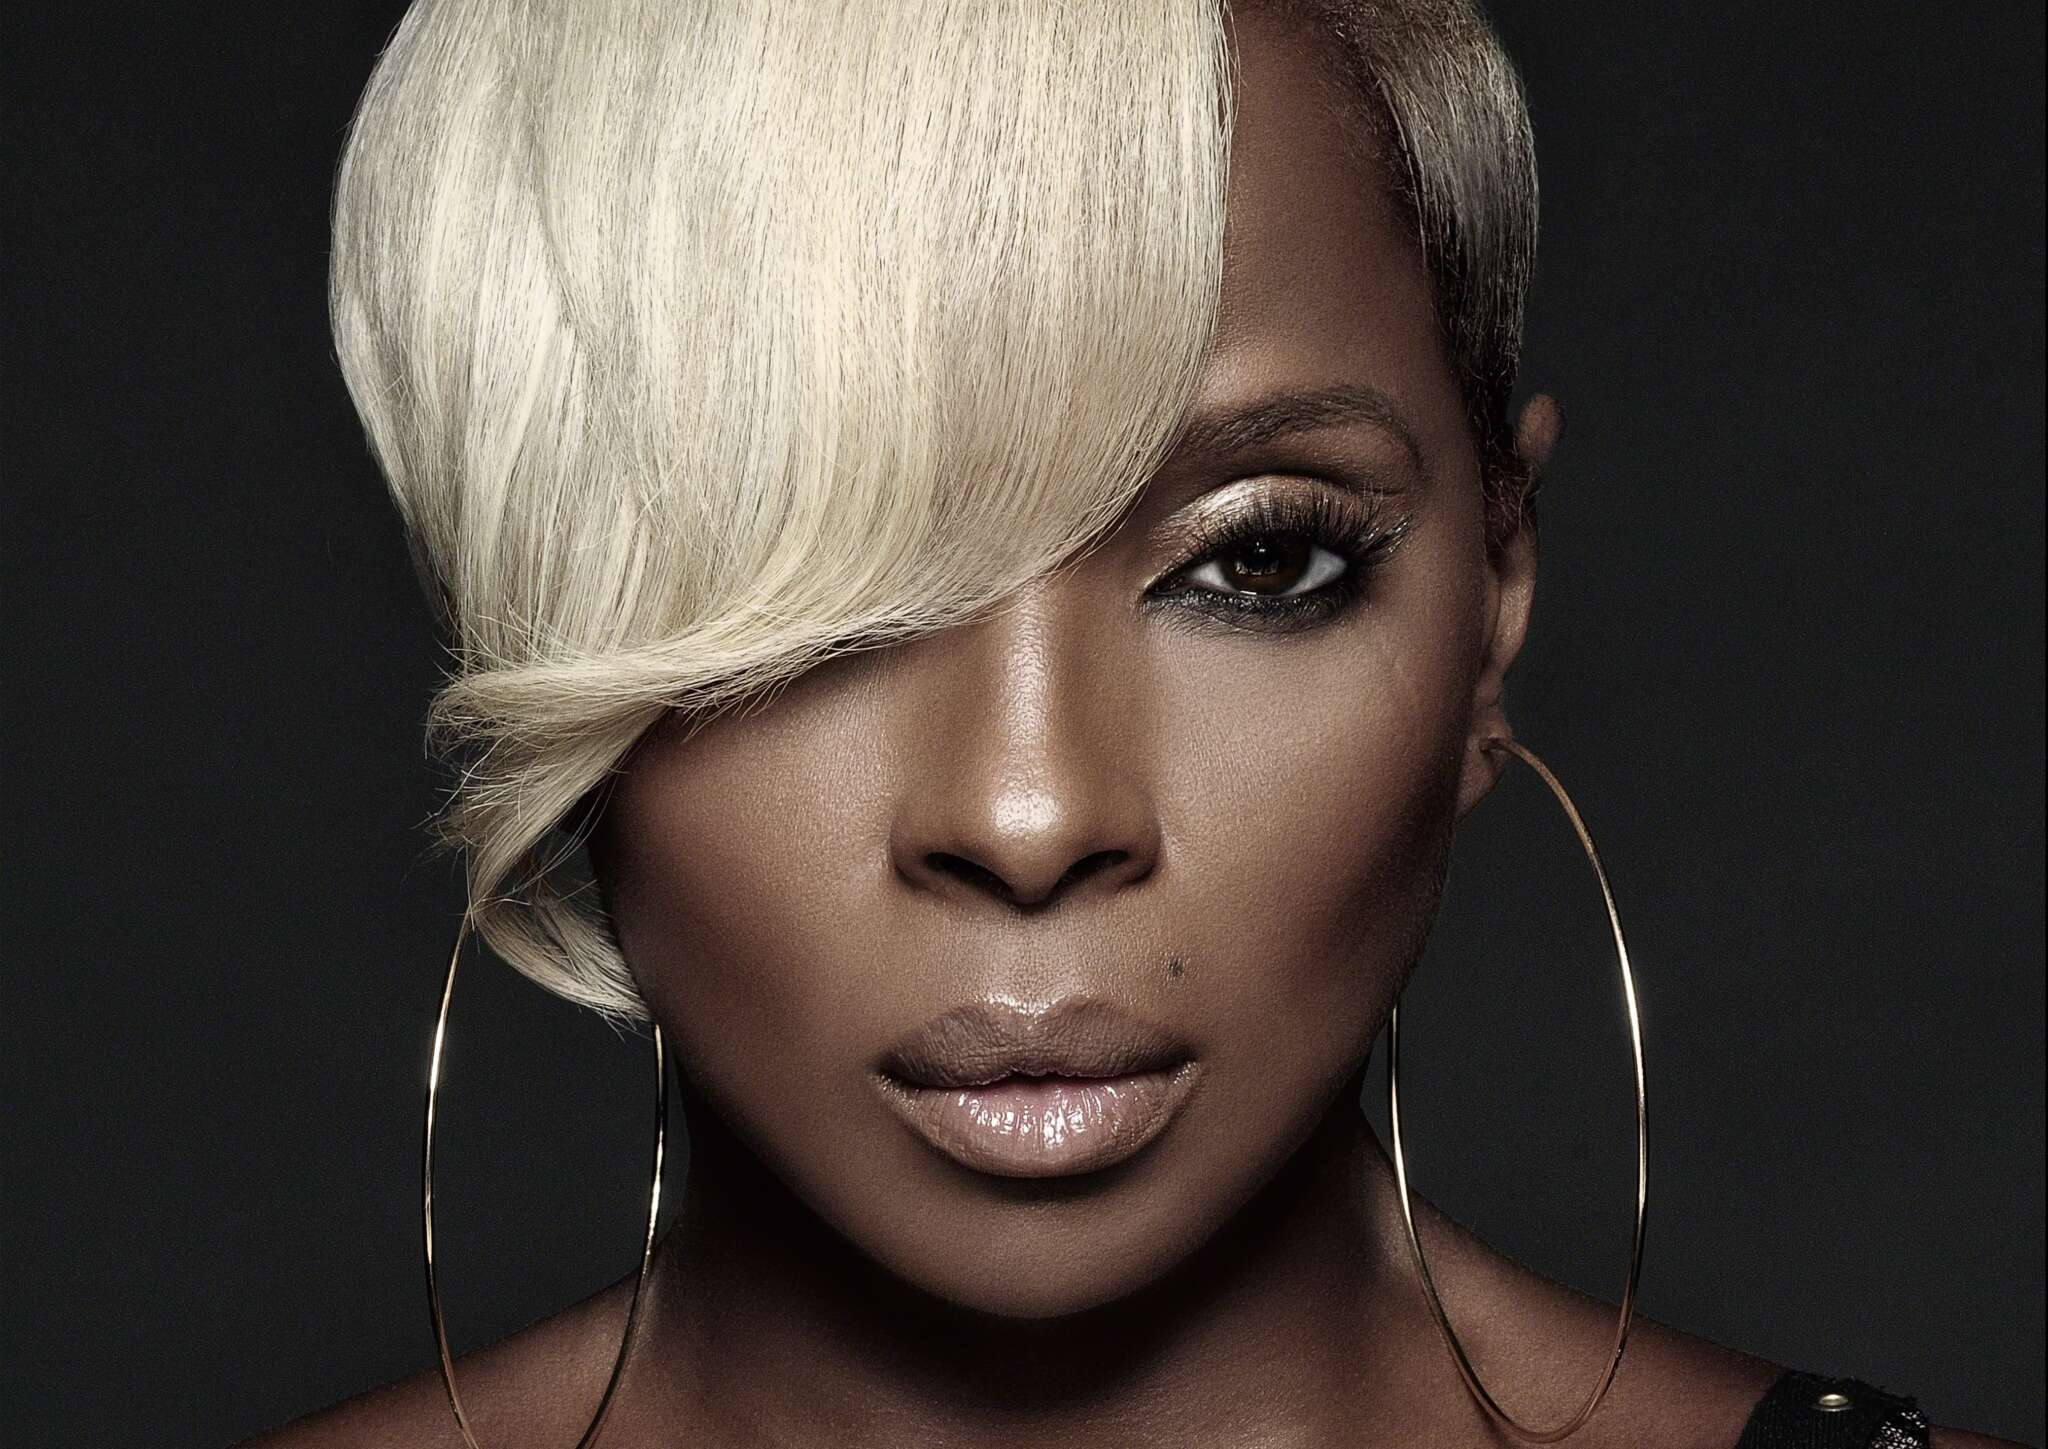 mary-j-blige-says-she-cried-when-she-turned-50-years-old-heres-why